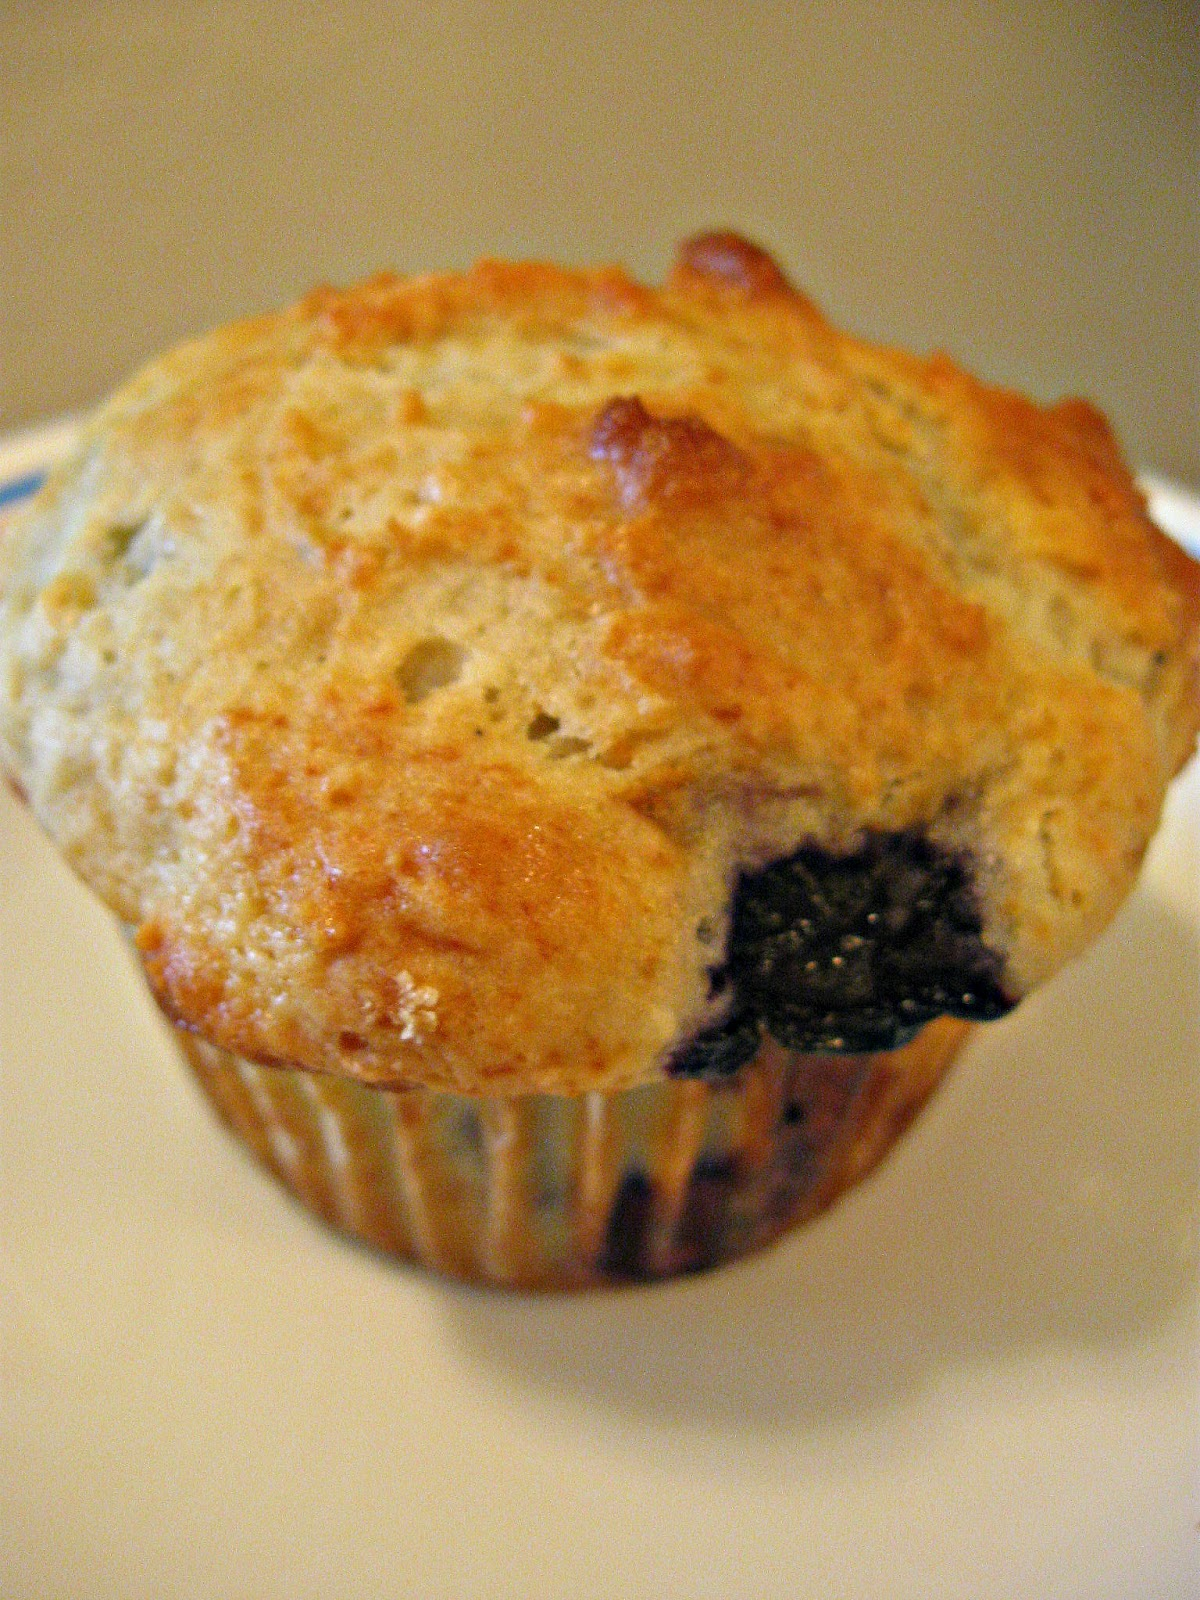 THE REHOMESTEADERS: Sour Cream Blueberry Muffins